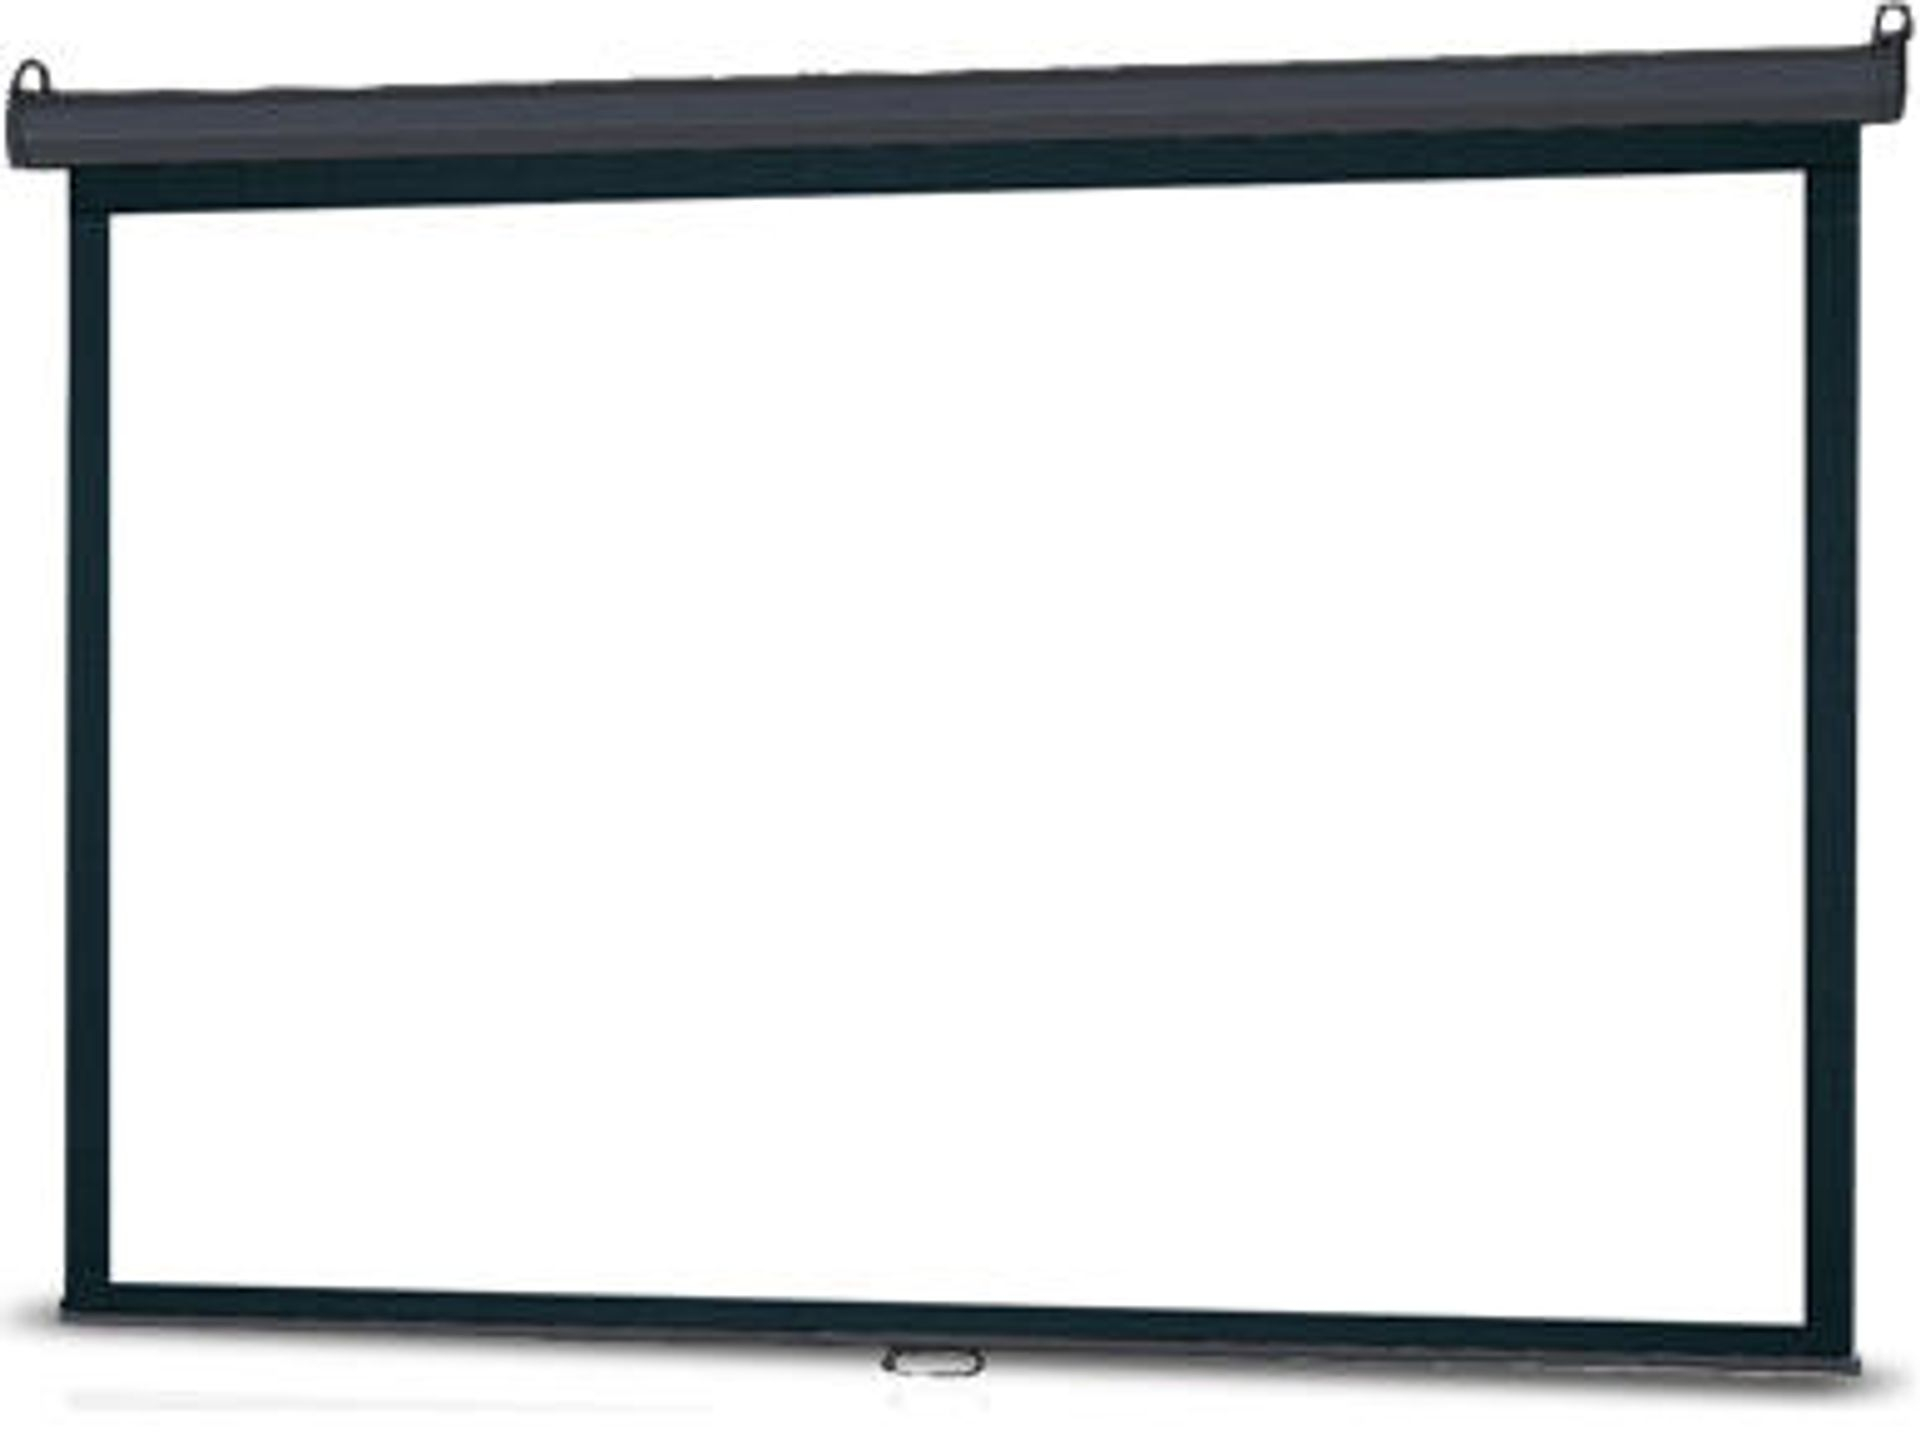 LCD Projector Screens